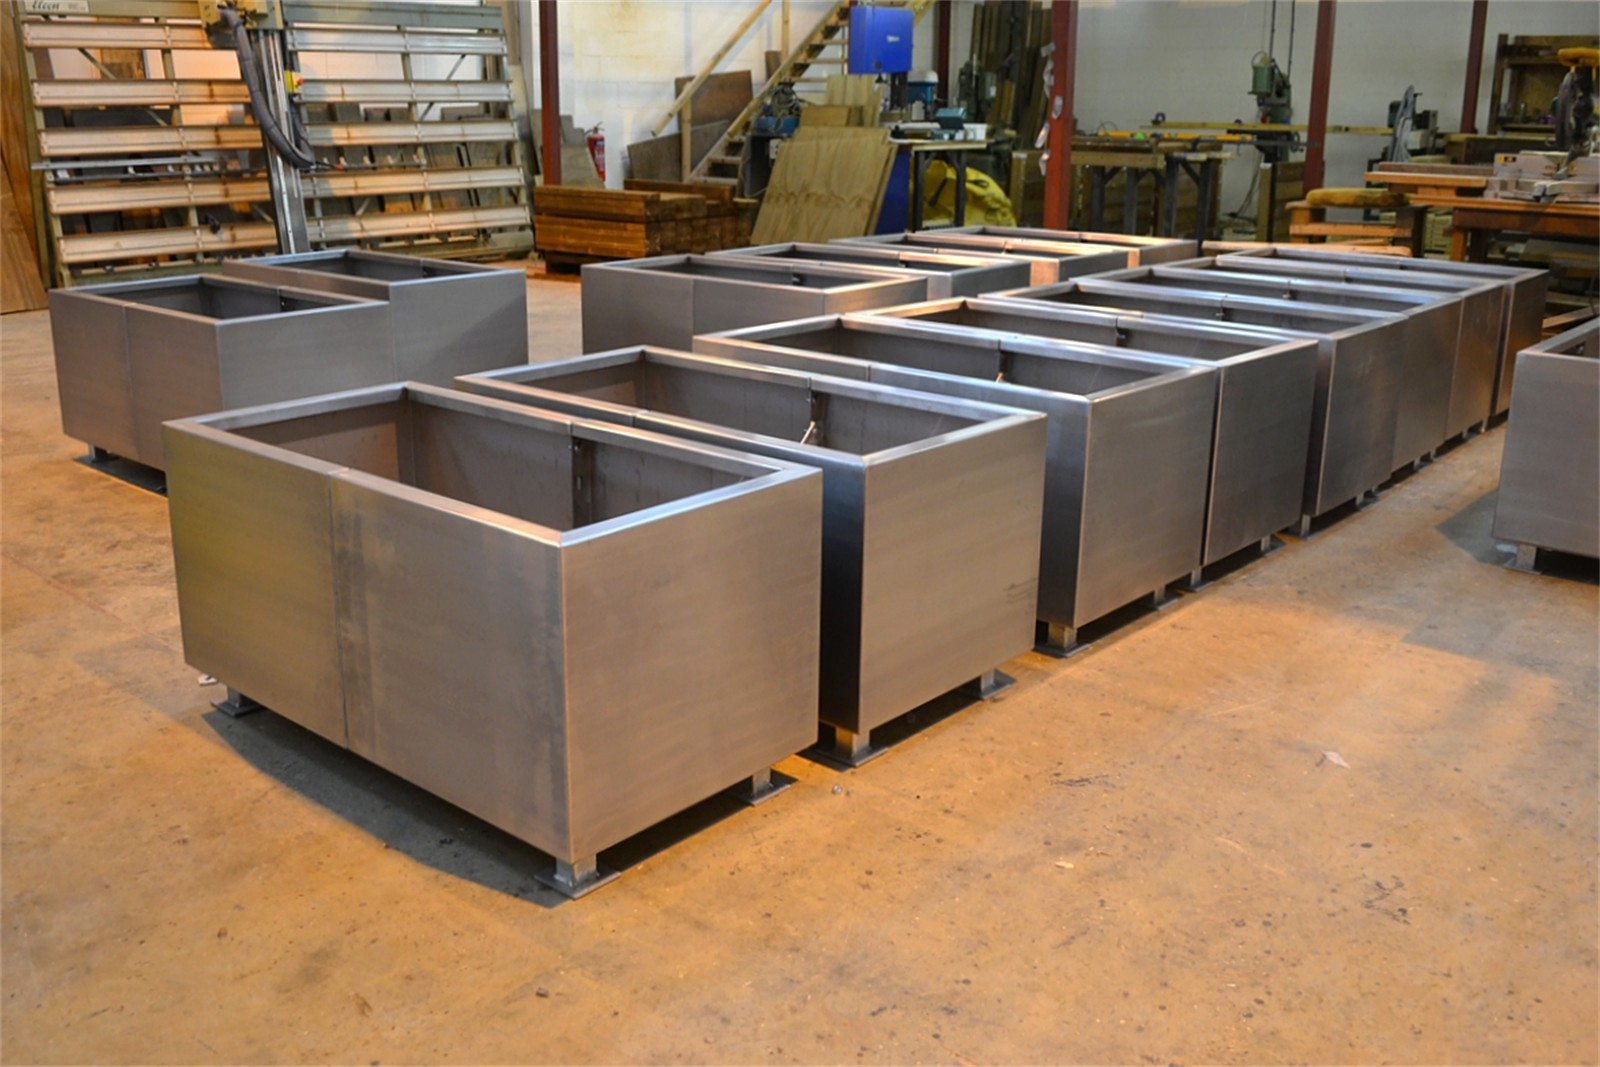 33p07 - Gretton stainless steel planters in manufacture